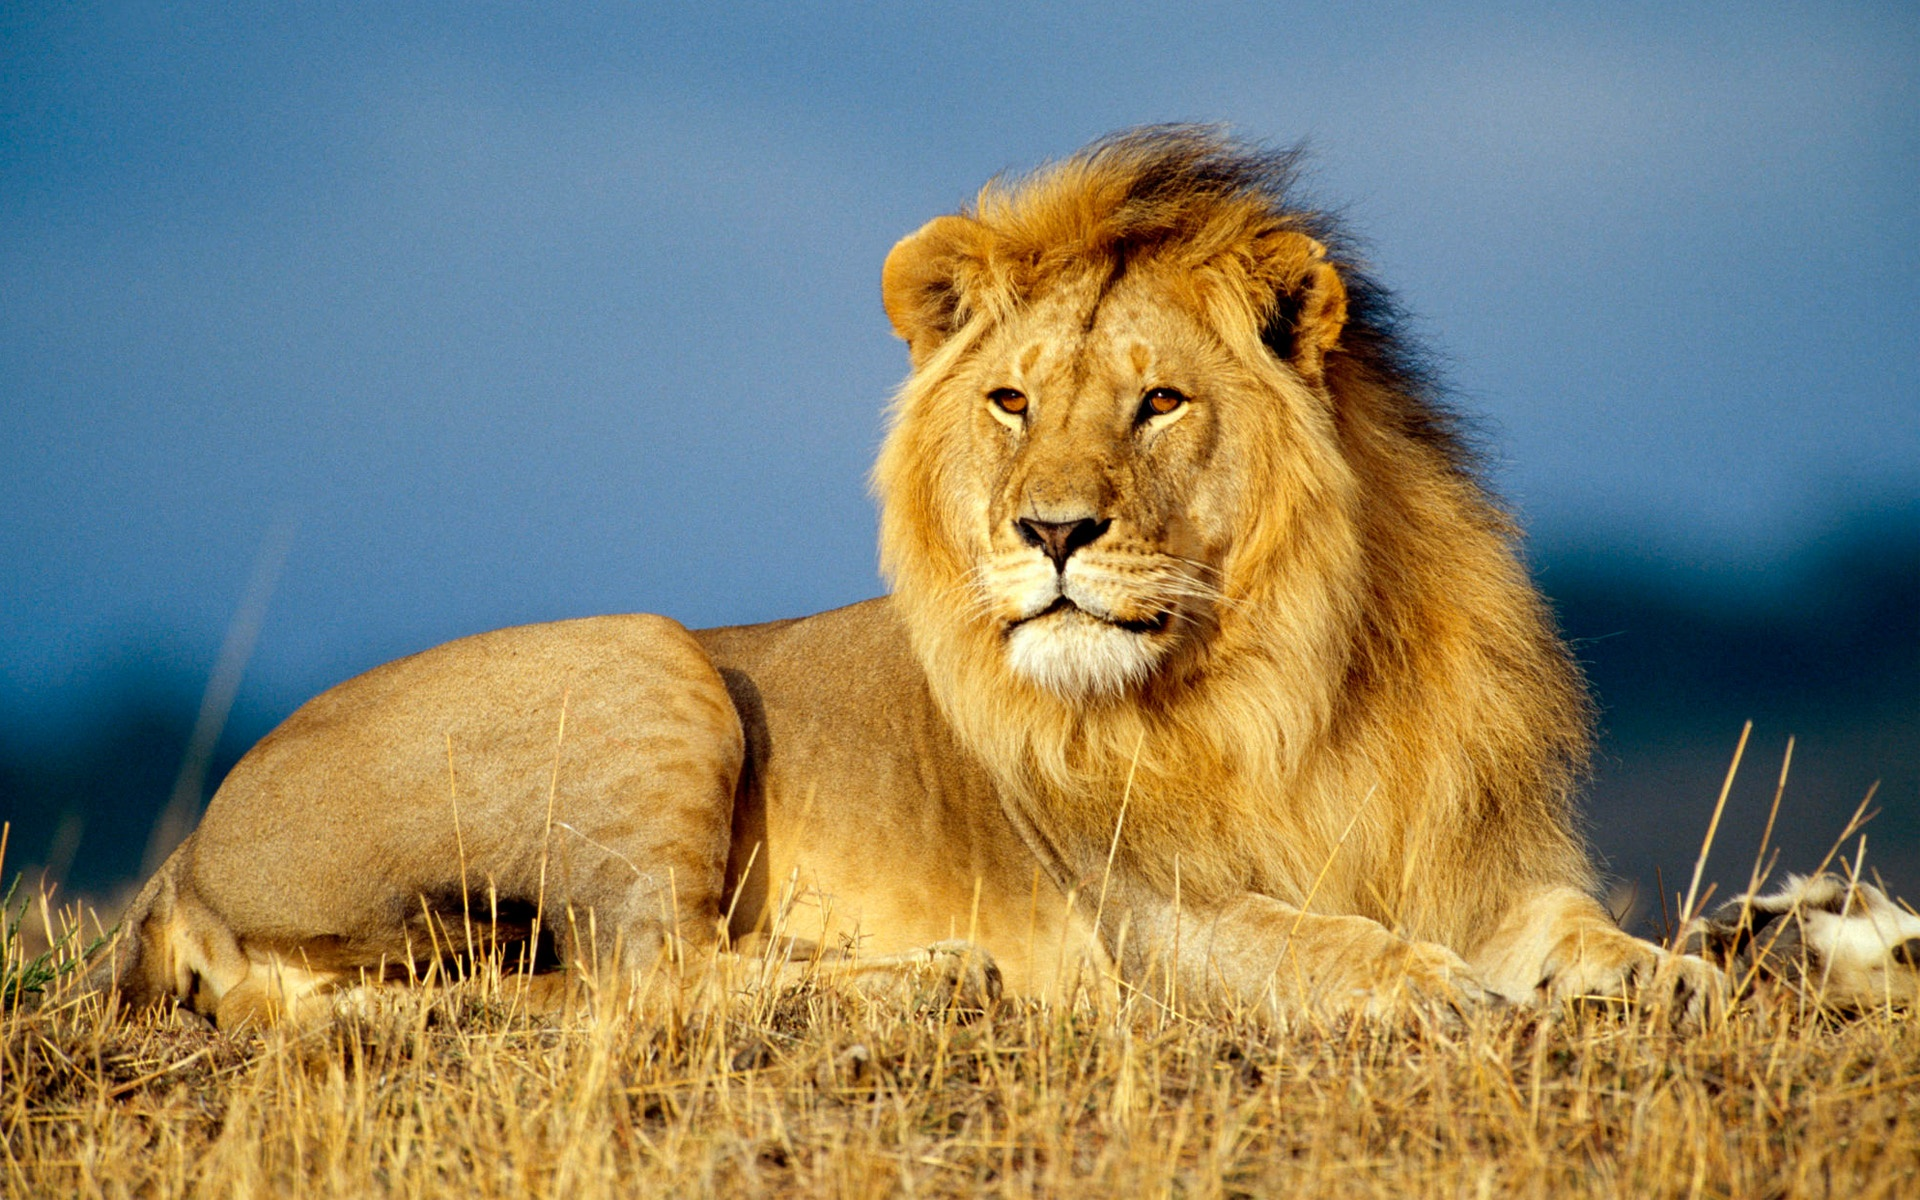 Lion wallpaper wallpapers for free download about 3030 wallpapers